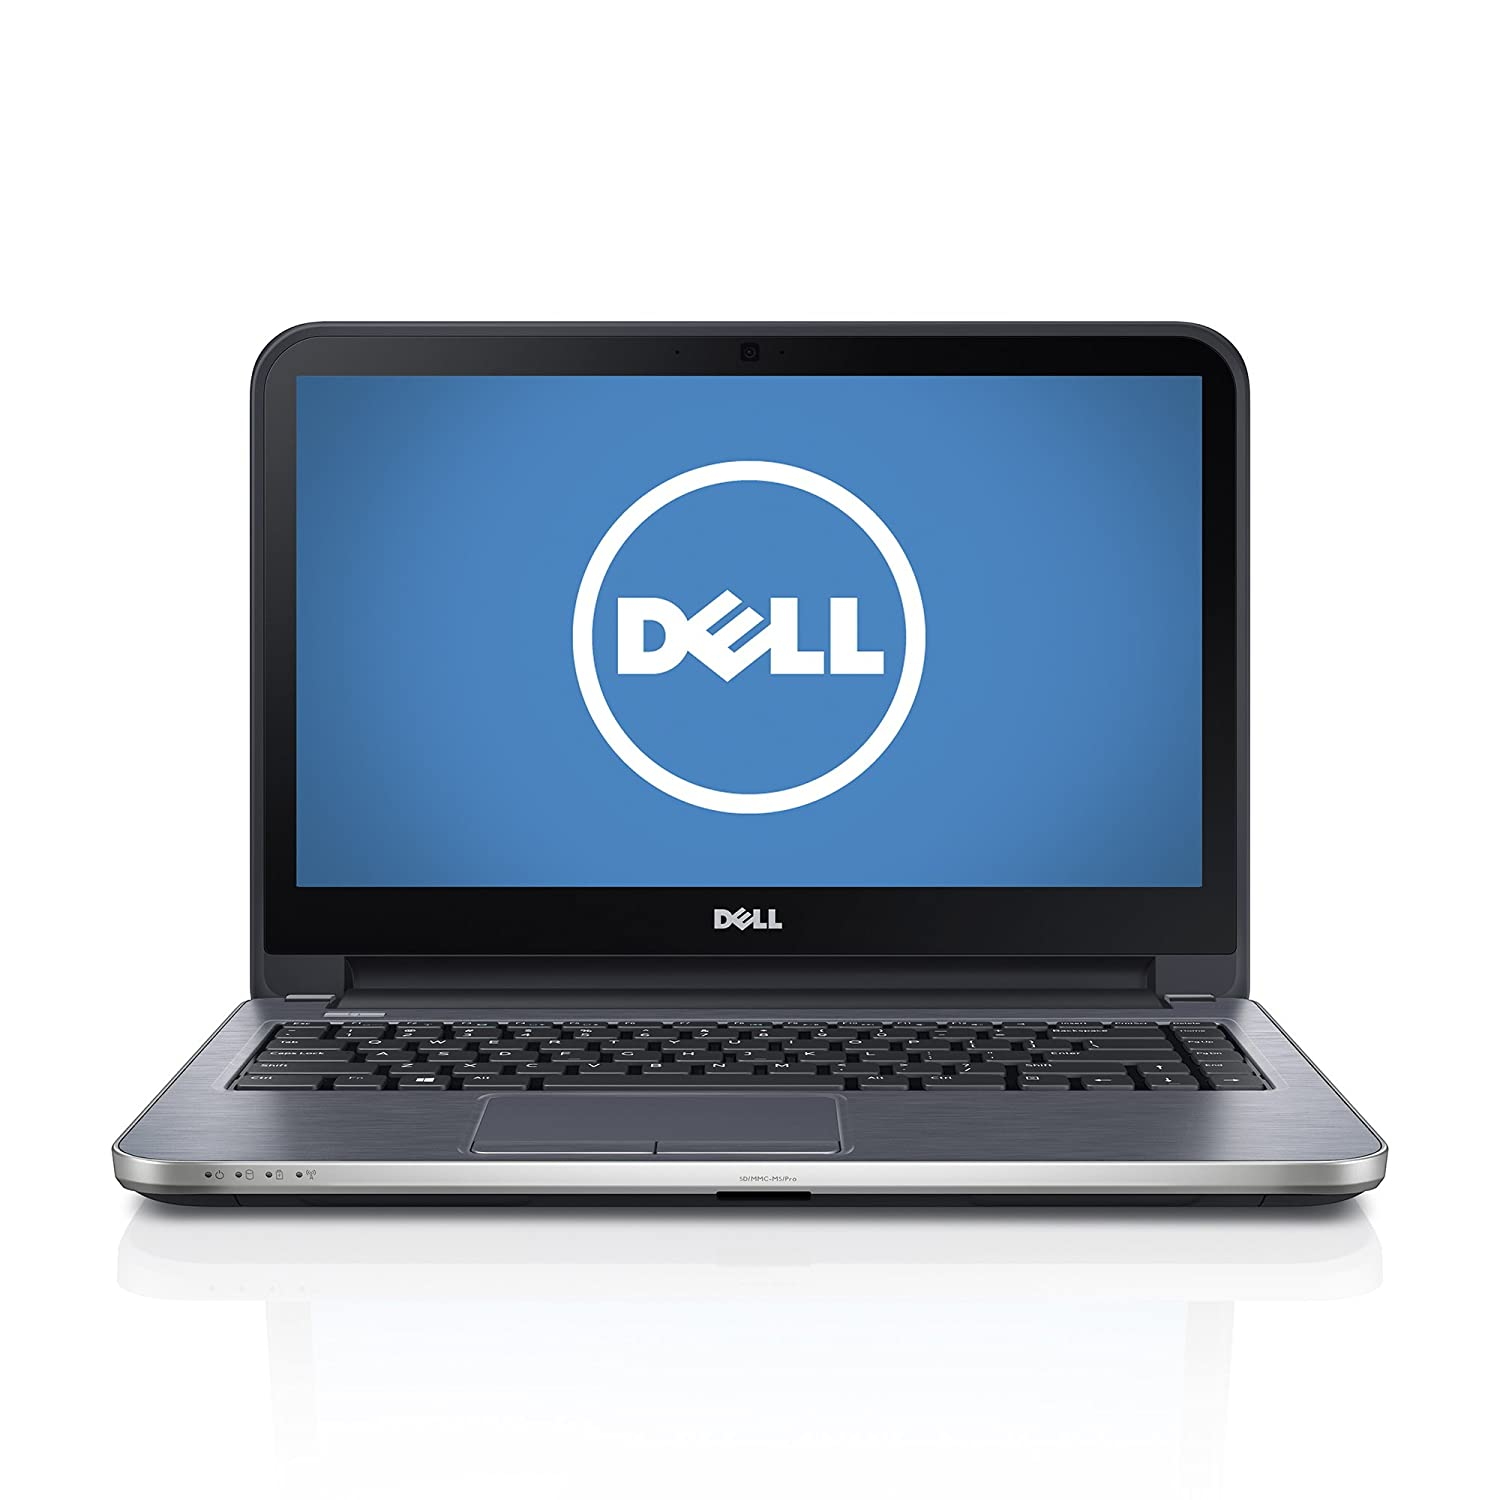 Dell Inspiron 14R i14RMT-7500sLV 14-Inch Touchscreen Laptop (1.6 GHz Intel Core i5-4200U Processor, 8GB DDR3L, 1TB HDD, Windows 8) Moon Silver [Discontinued By Manufacturer] by Dell   B00F3ZNZBI